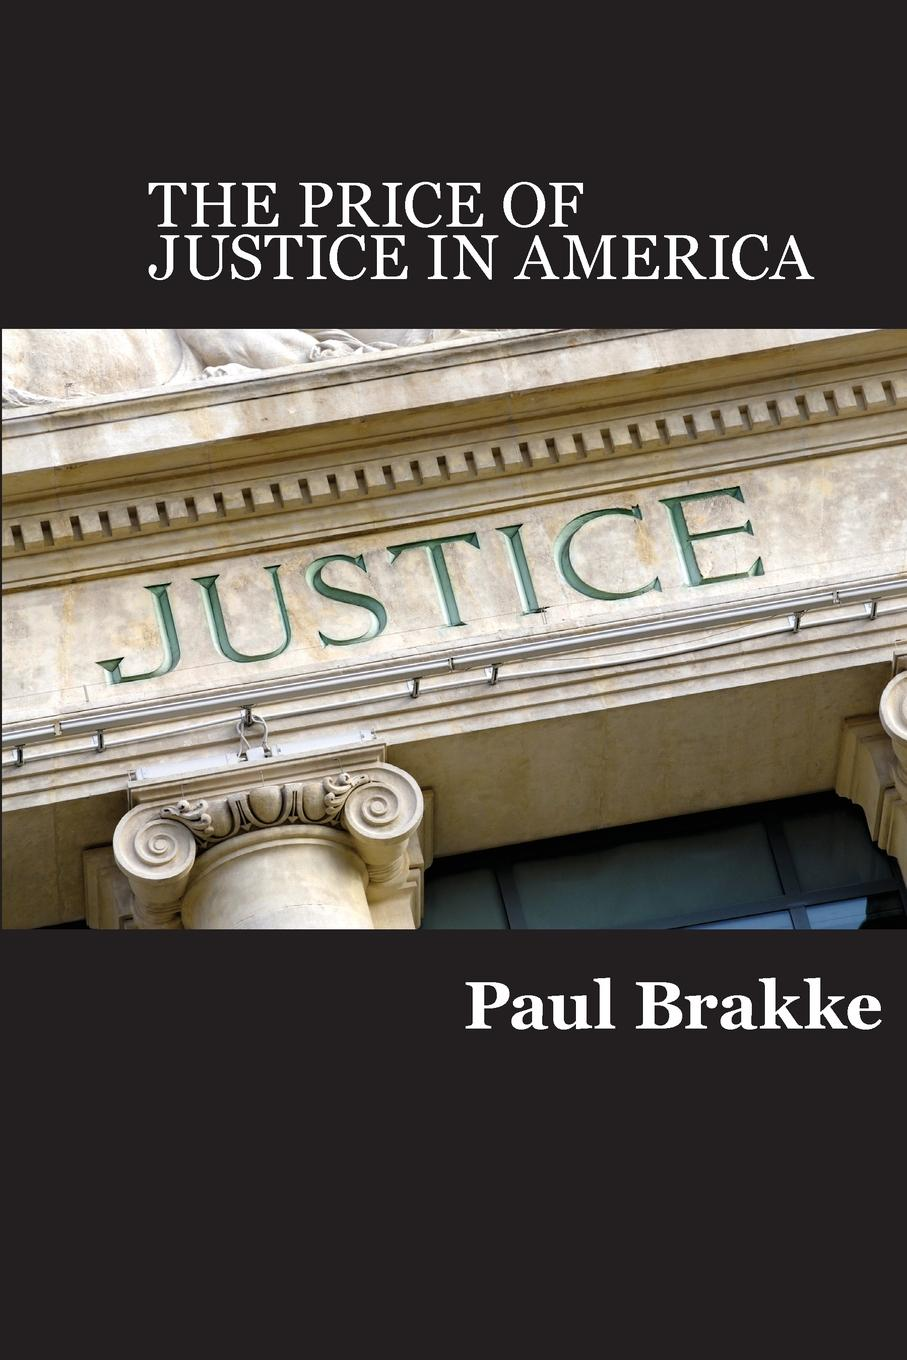 Paul Brakke The Price of Justice. Commentaries on the Criminal Justice System and Ways to Fix What.s Wrong the writing system